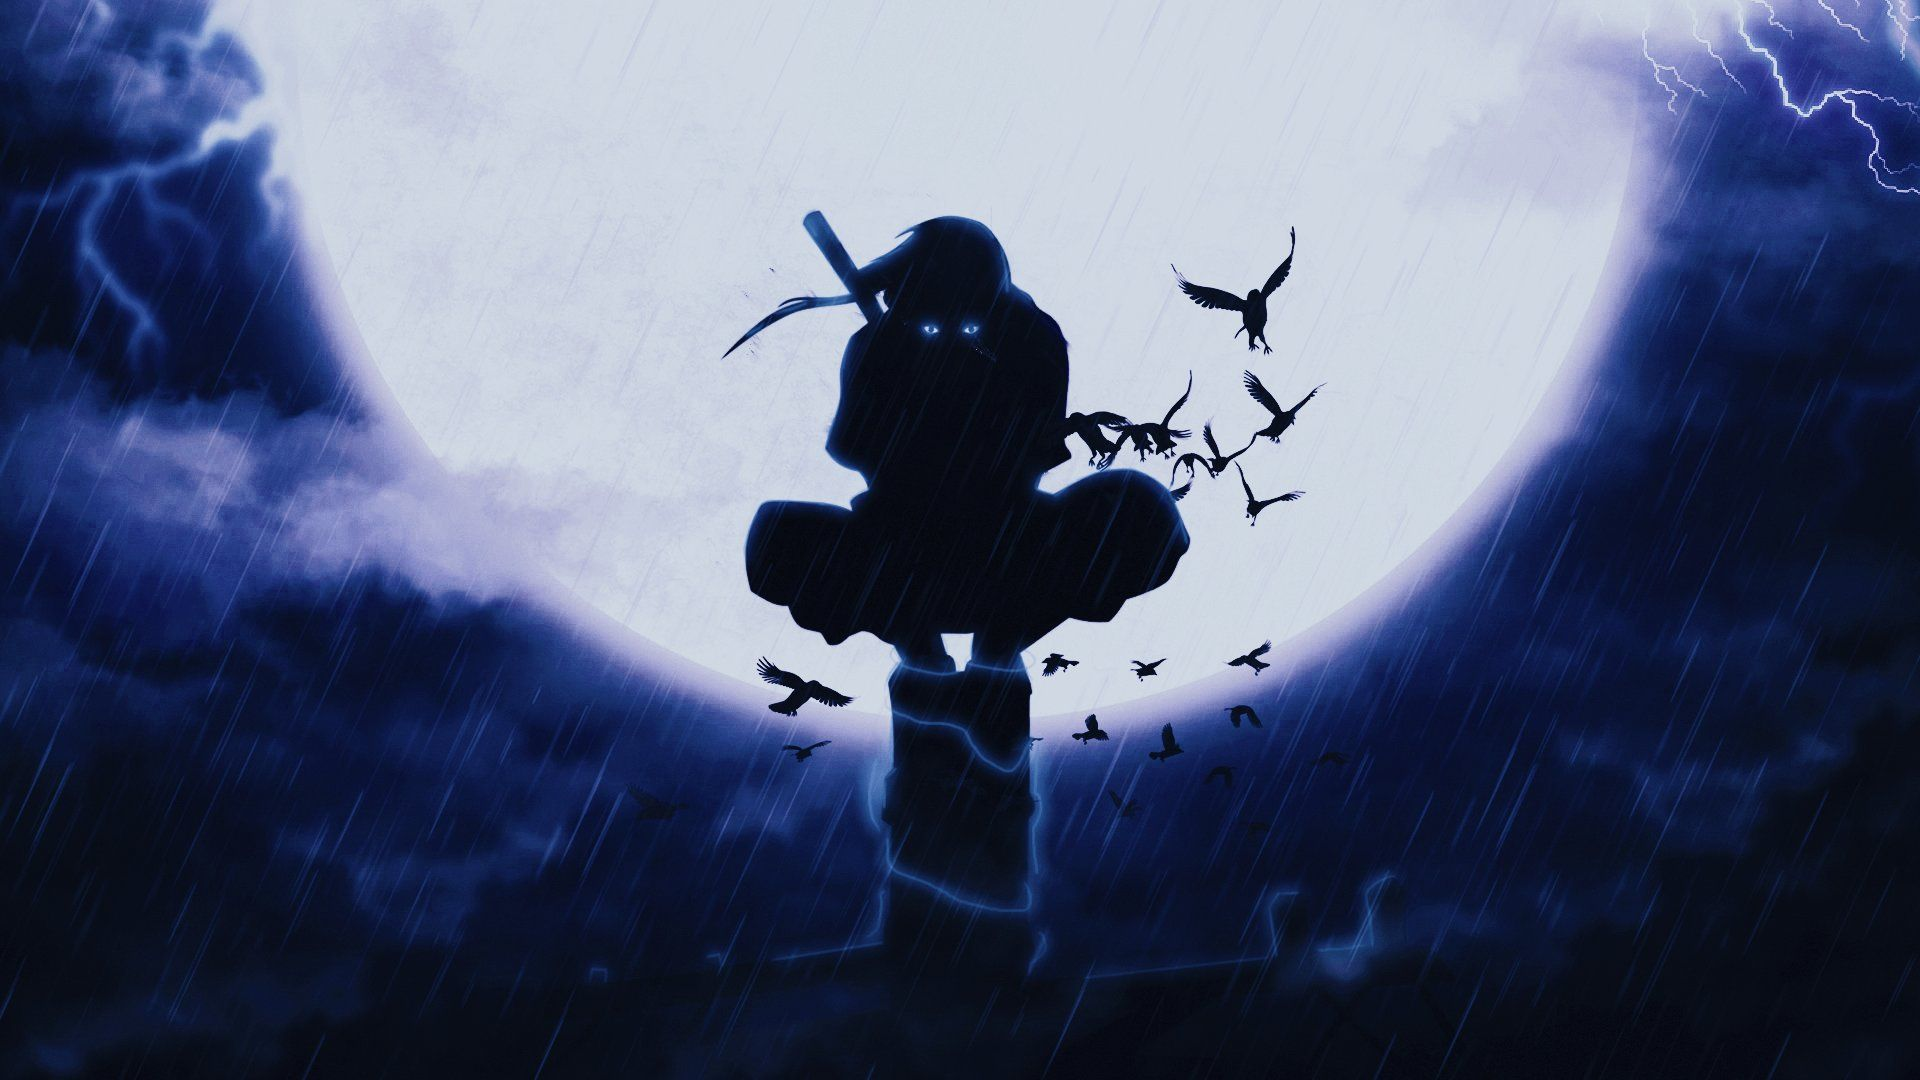 Itachi Aesthetic Pc Wallpapers Wallpaper Cave